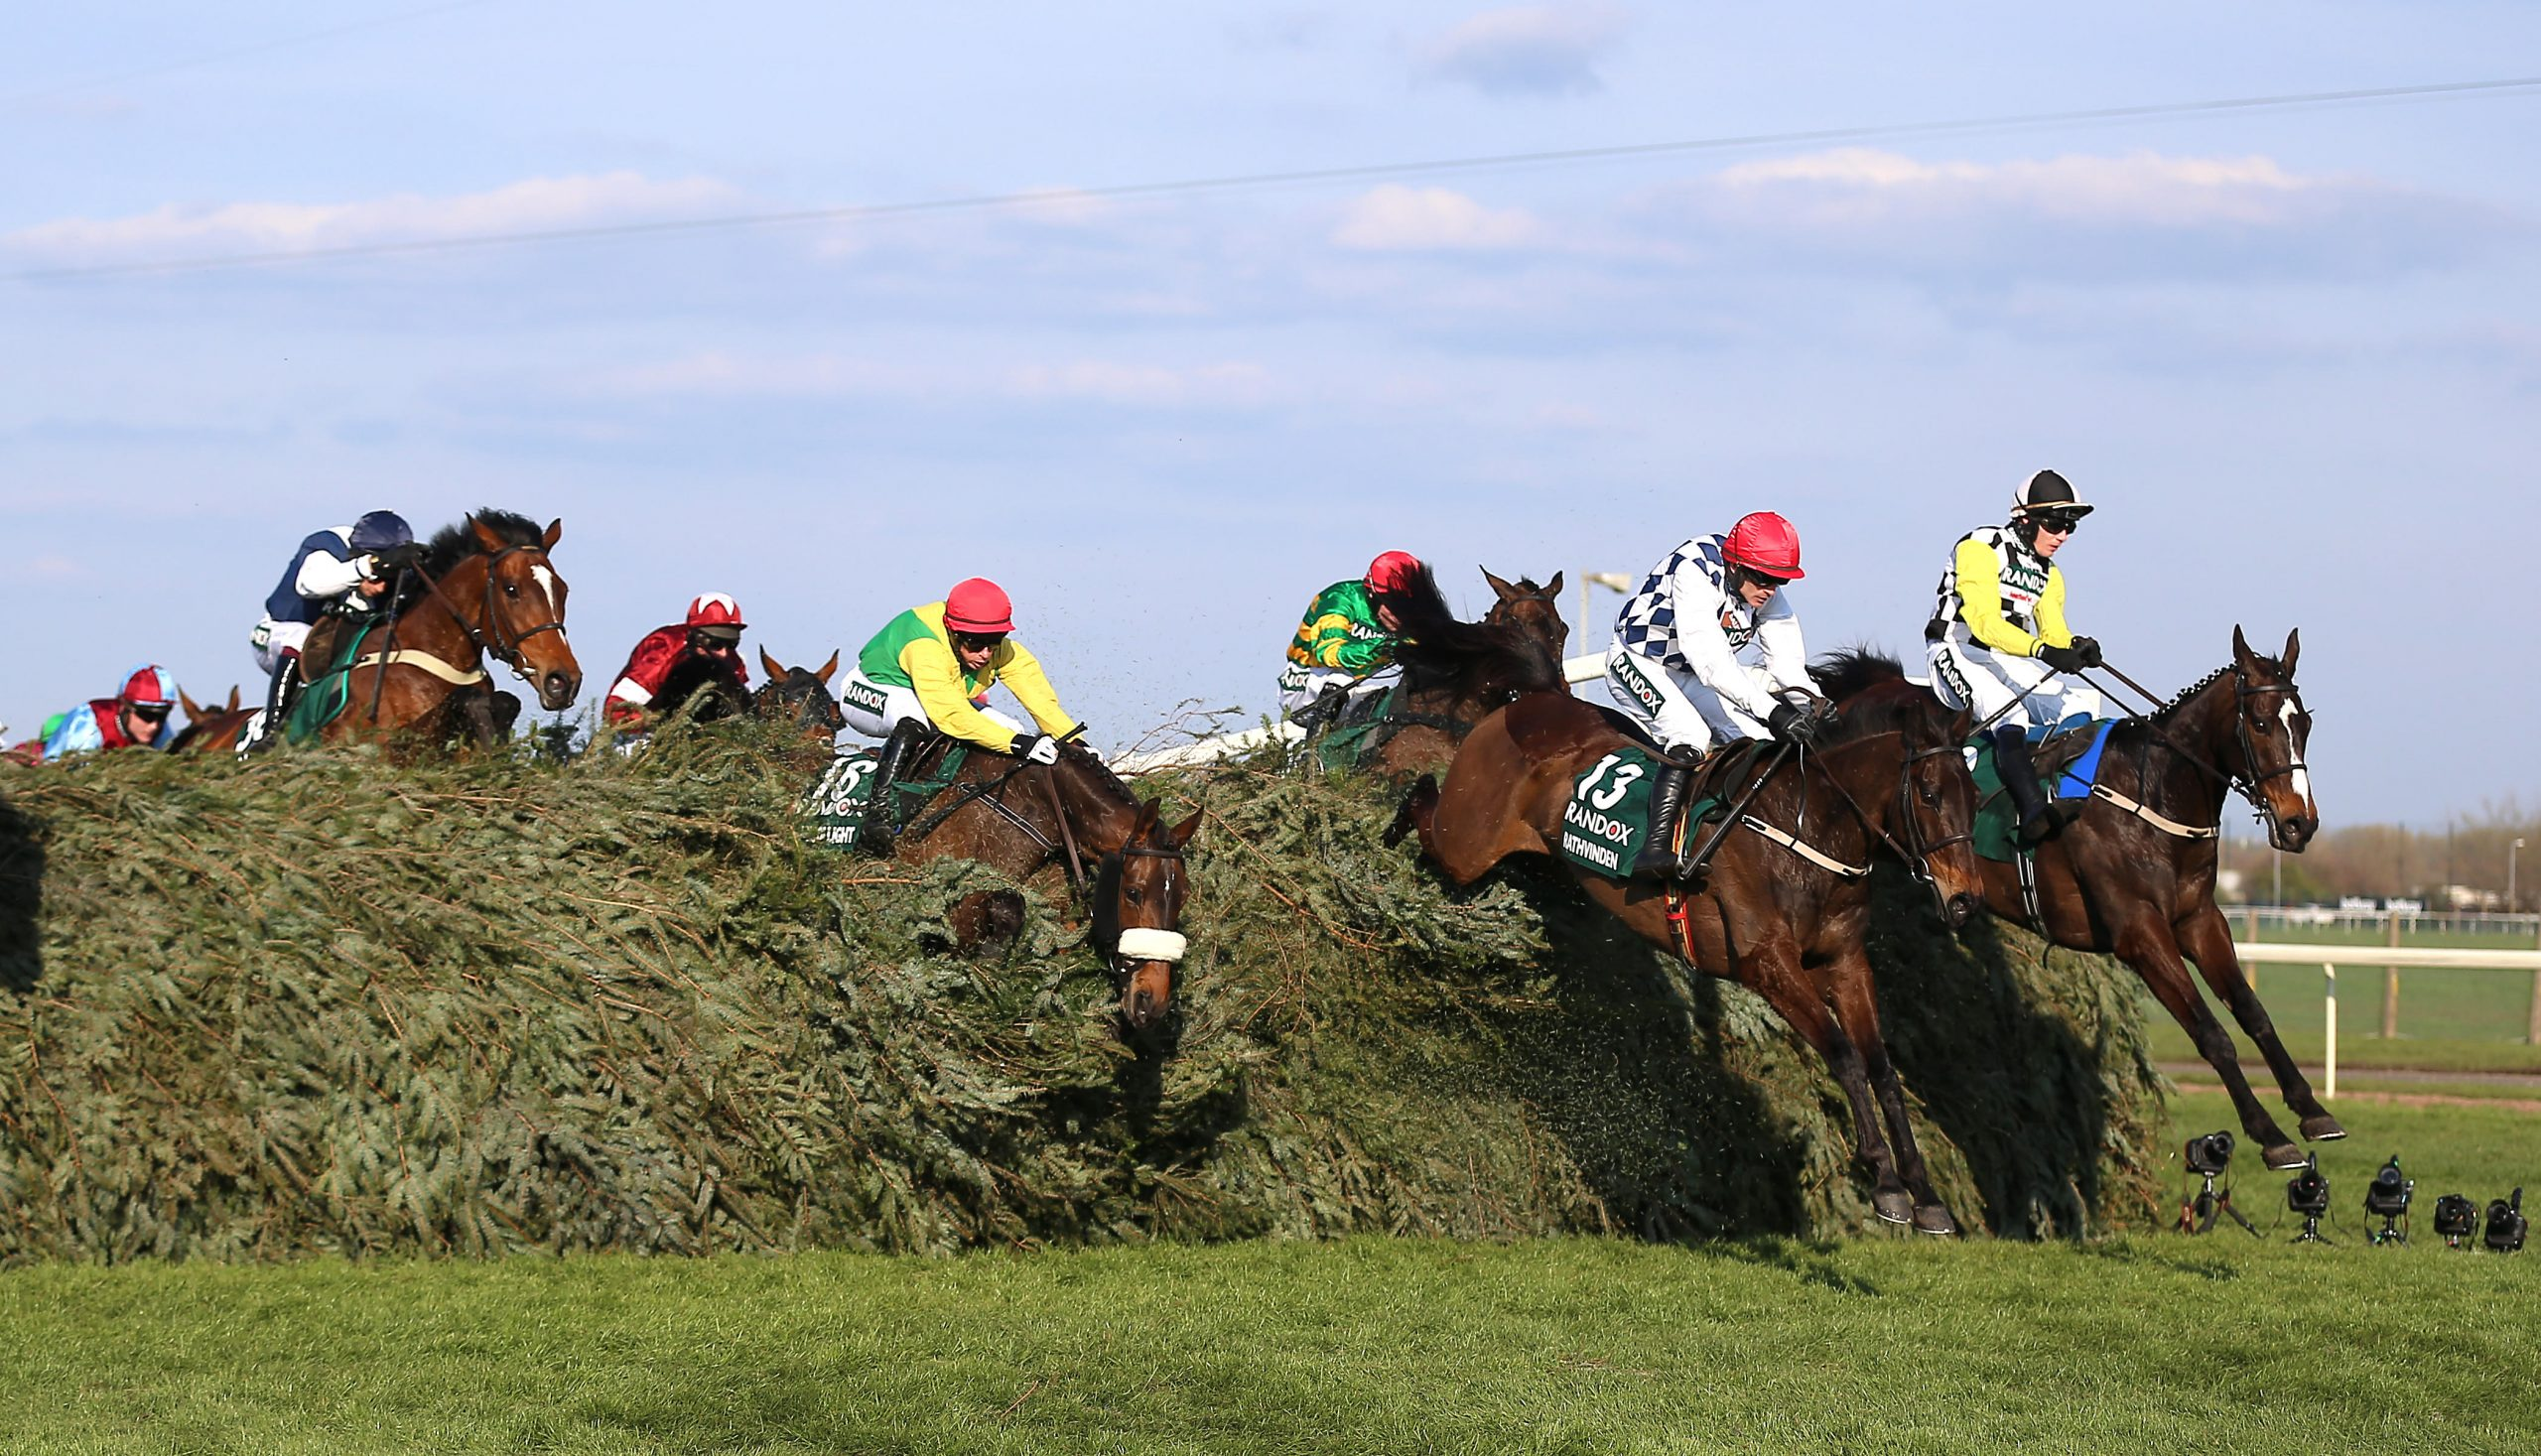 Horses jump a fence during the 2019 Grand National